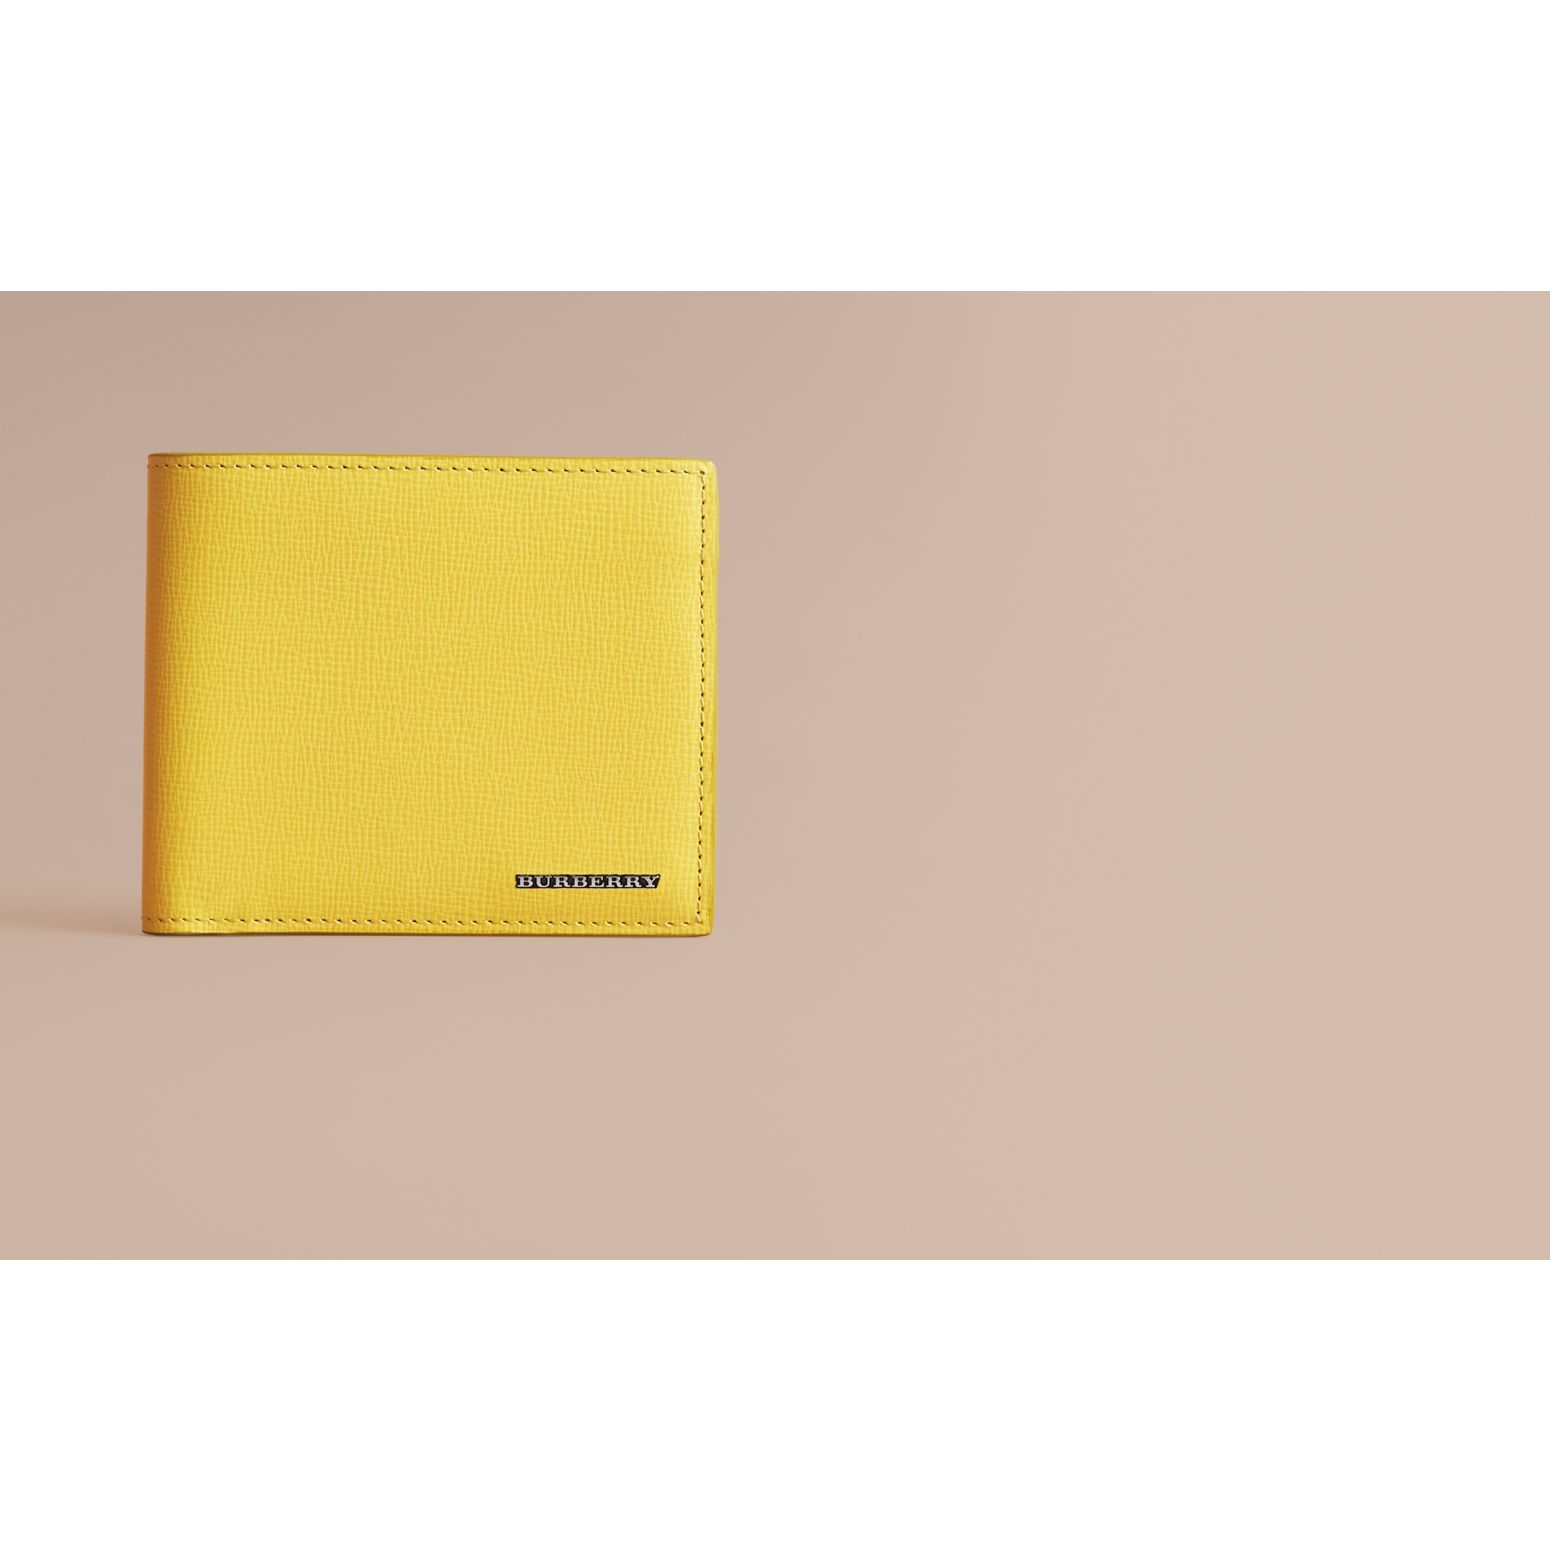 London Leather Folding Wallet in Bright Citrus | Burberry - gallery image 2